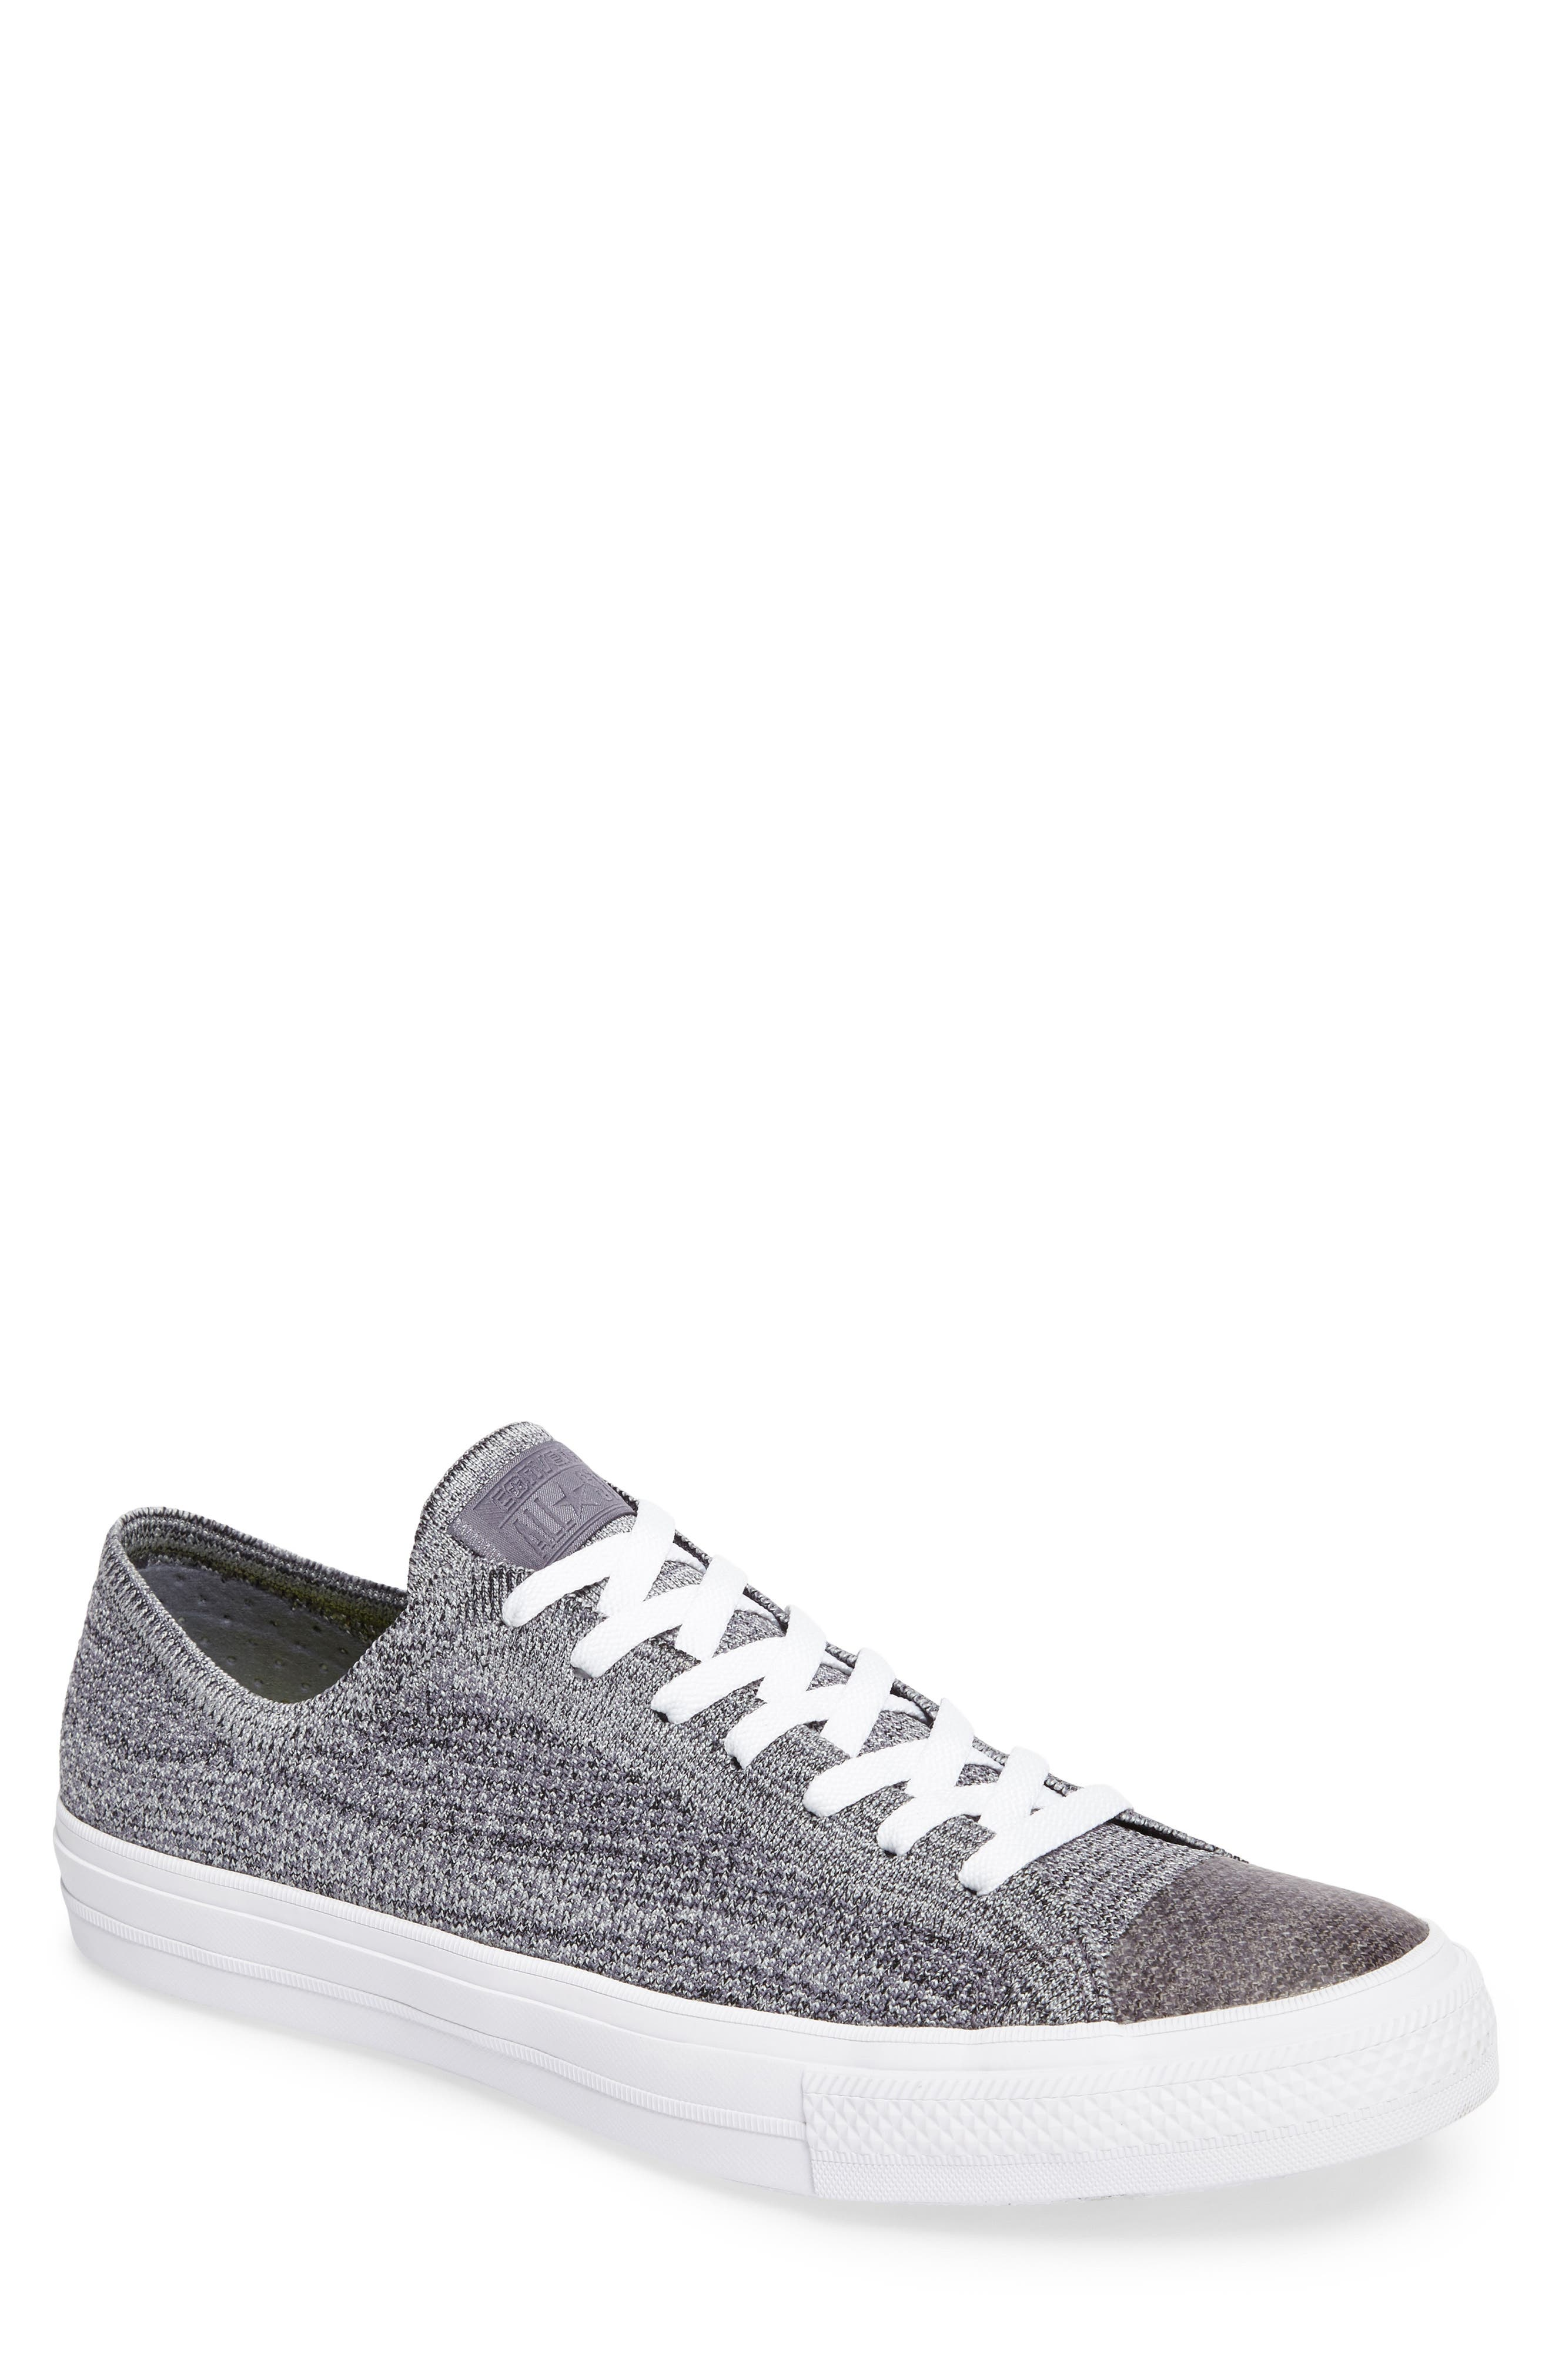 Chuck Taylor<sup>®</sup> All Star<sup>®</sup> Flyknit Sneaker,                         Main,                         color, Carbon